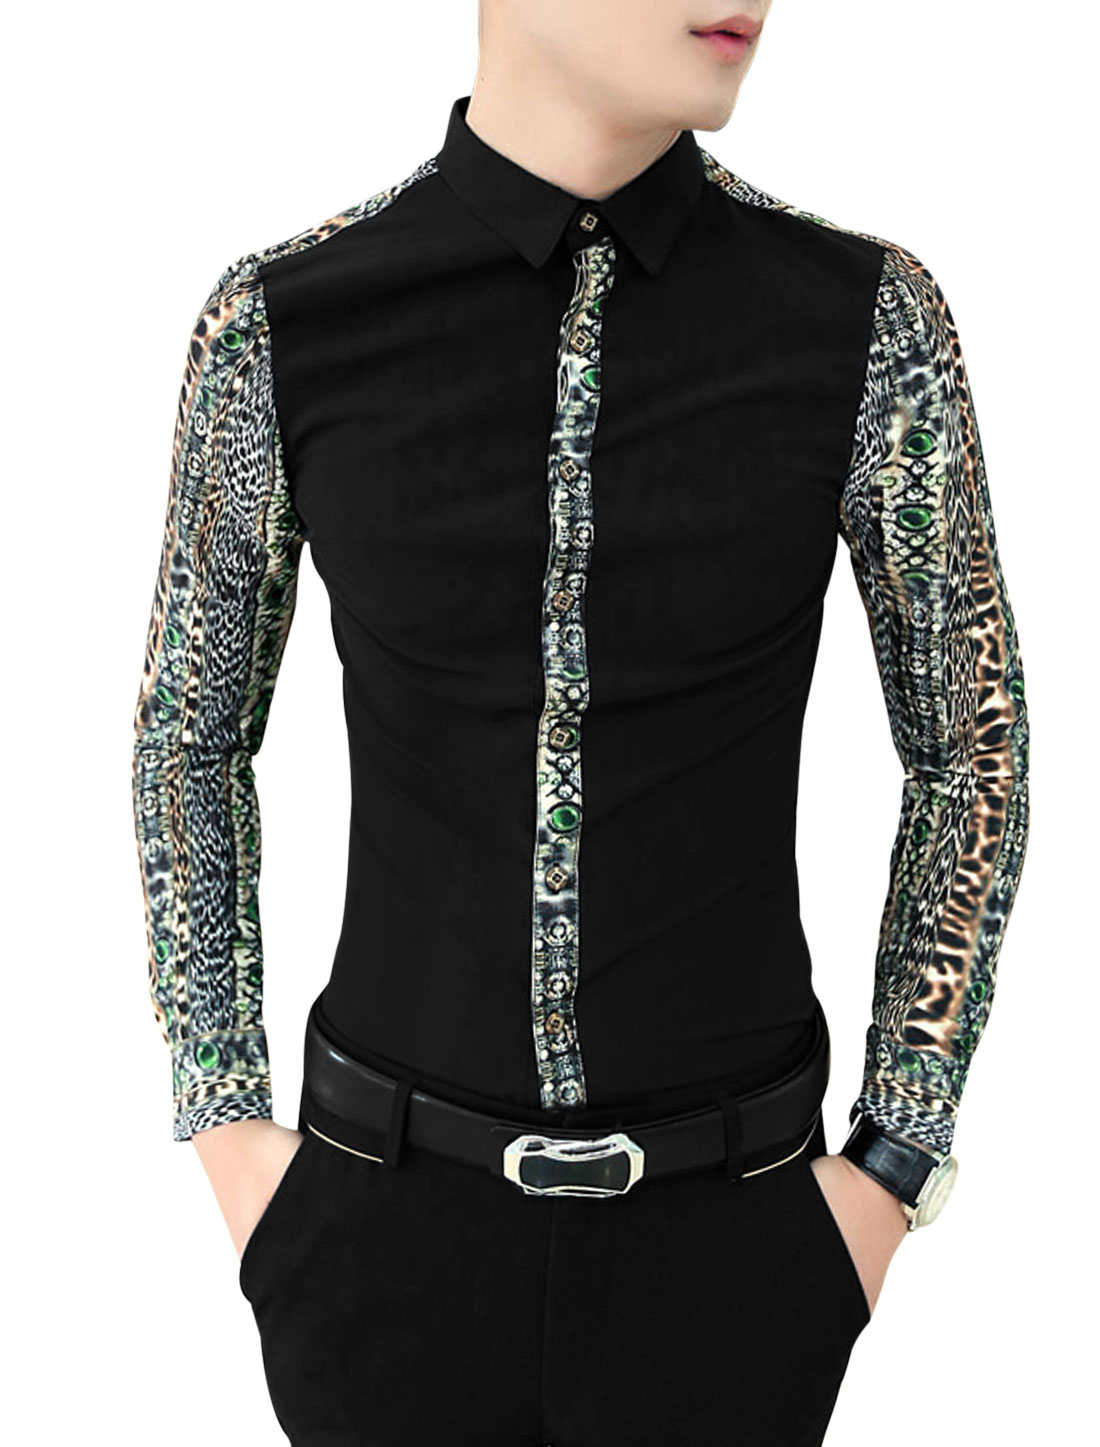 Men Stylish Contrast Novelty Print Contrast Placket Slim Shirt Black M